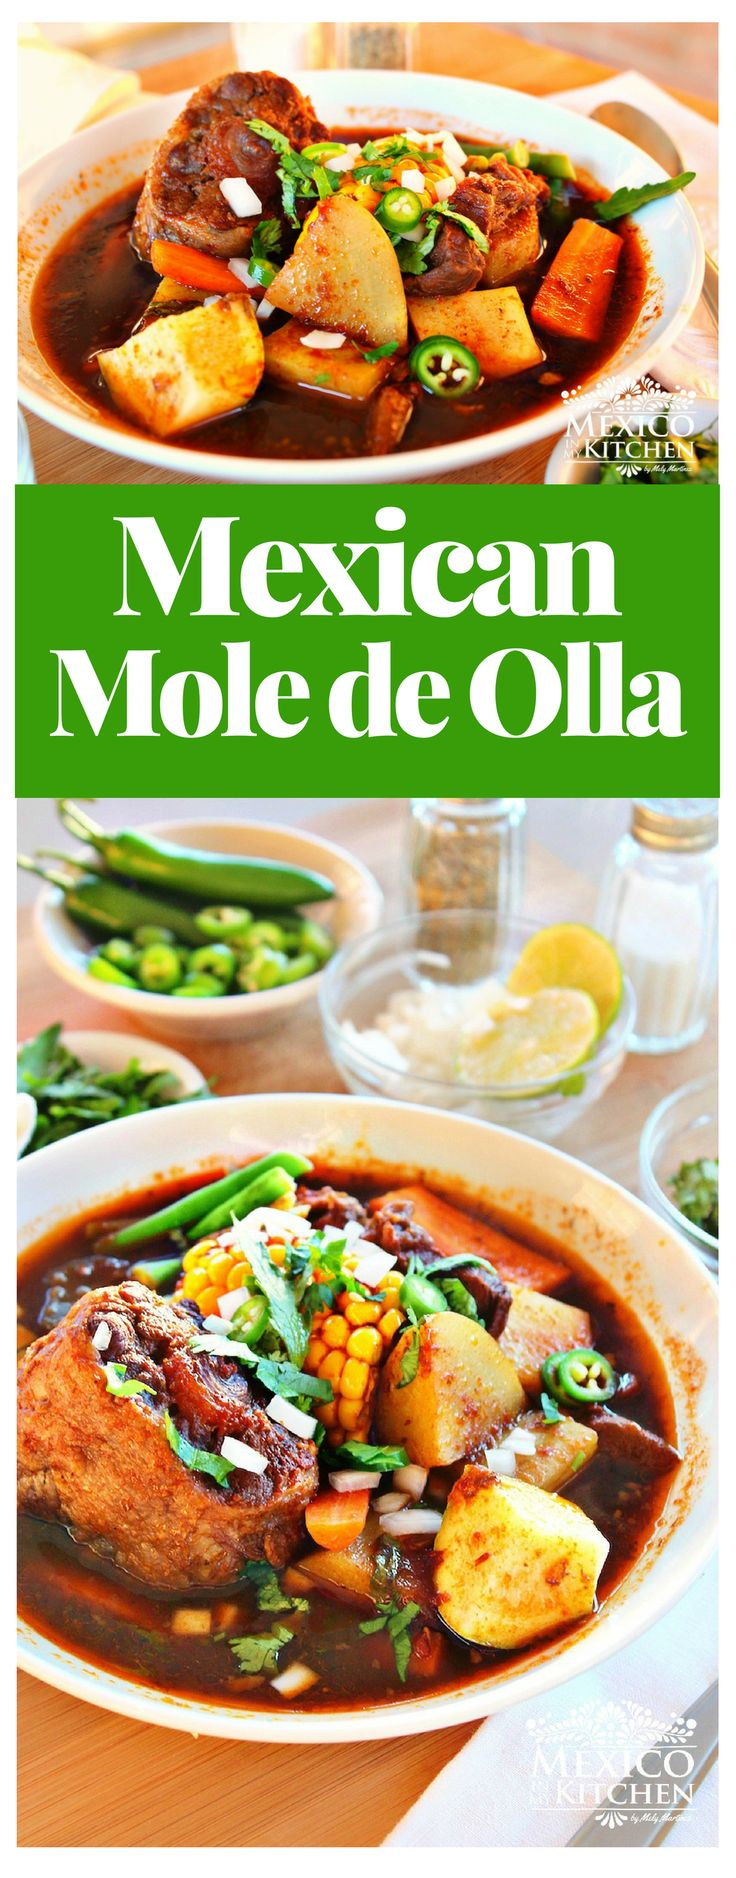 Mole de Olla is a rich soup with a little bit of moleflavor. It has many variations across the country, but is more popular in thecentral states of Mexico, where it is a common main dish in the mid-afternoon. #beef #mexicanrecipes #soups #mole #mexicandoad #mexicancuisine